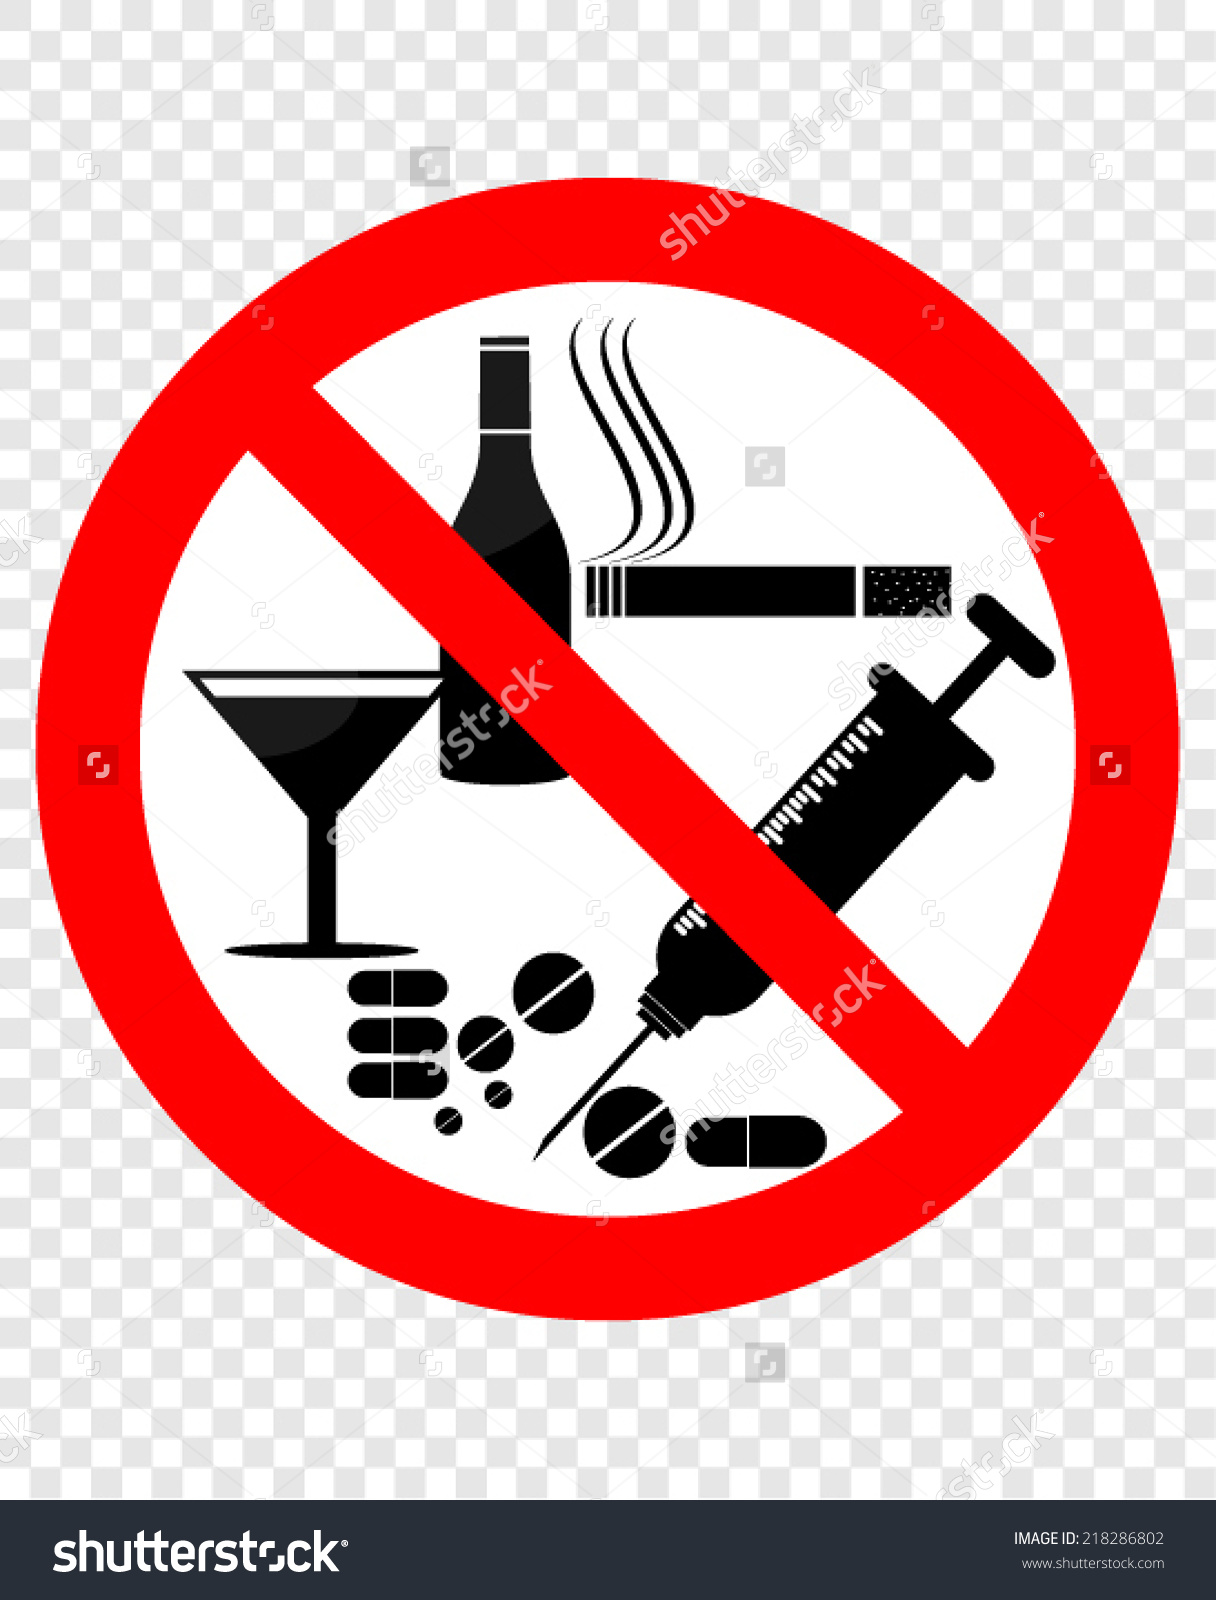 No To Drugs Clipart 20 Free Cliparts